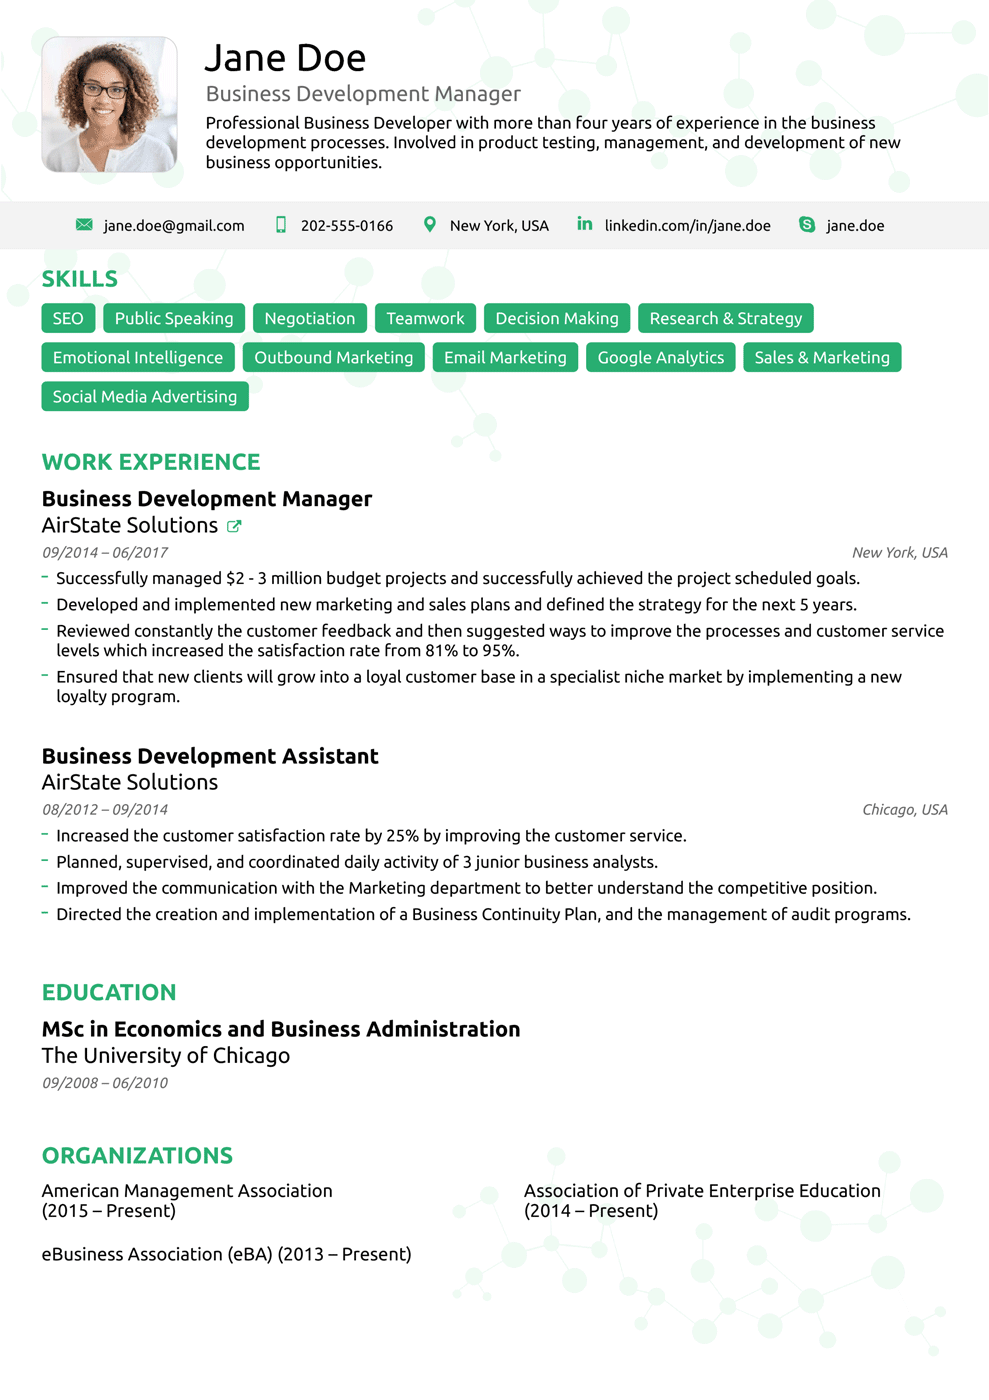 executive rsum template - Resume Templates Business